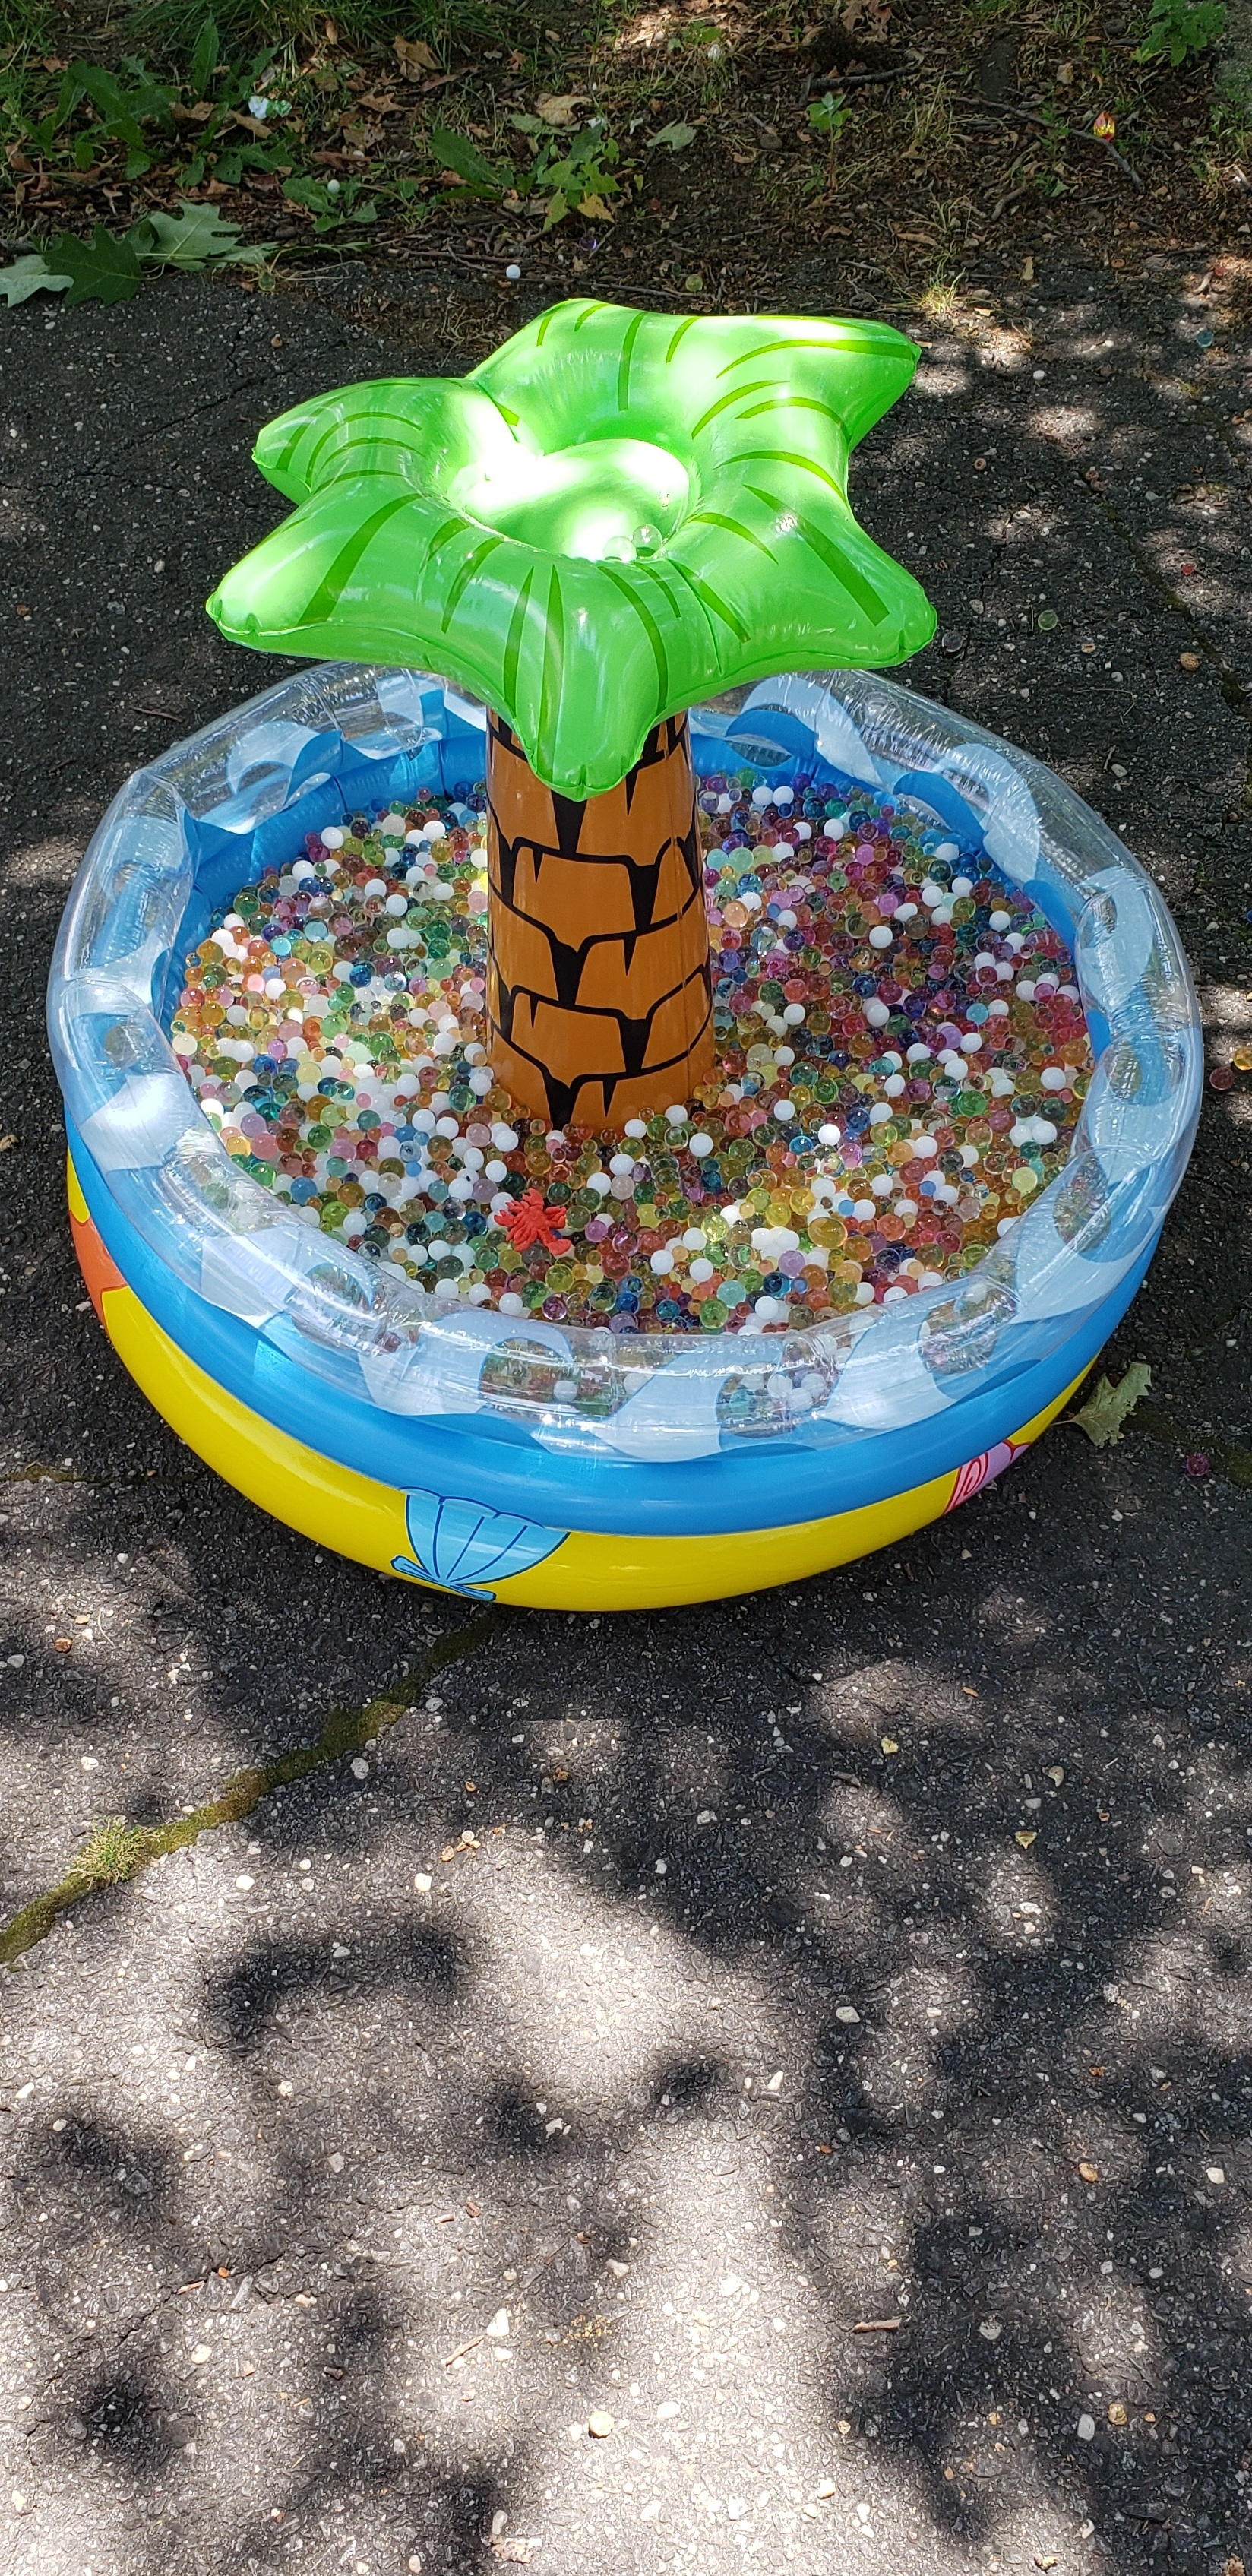 Inflatable, plastic swimming pool with an inflatable palm tree in the middle of it situated on a piece of asphalt. The pool is filled with water-bead sensory materials.